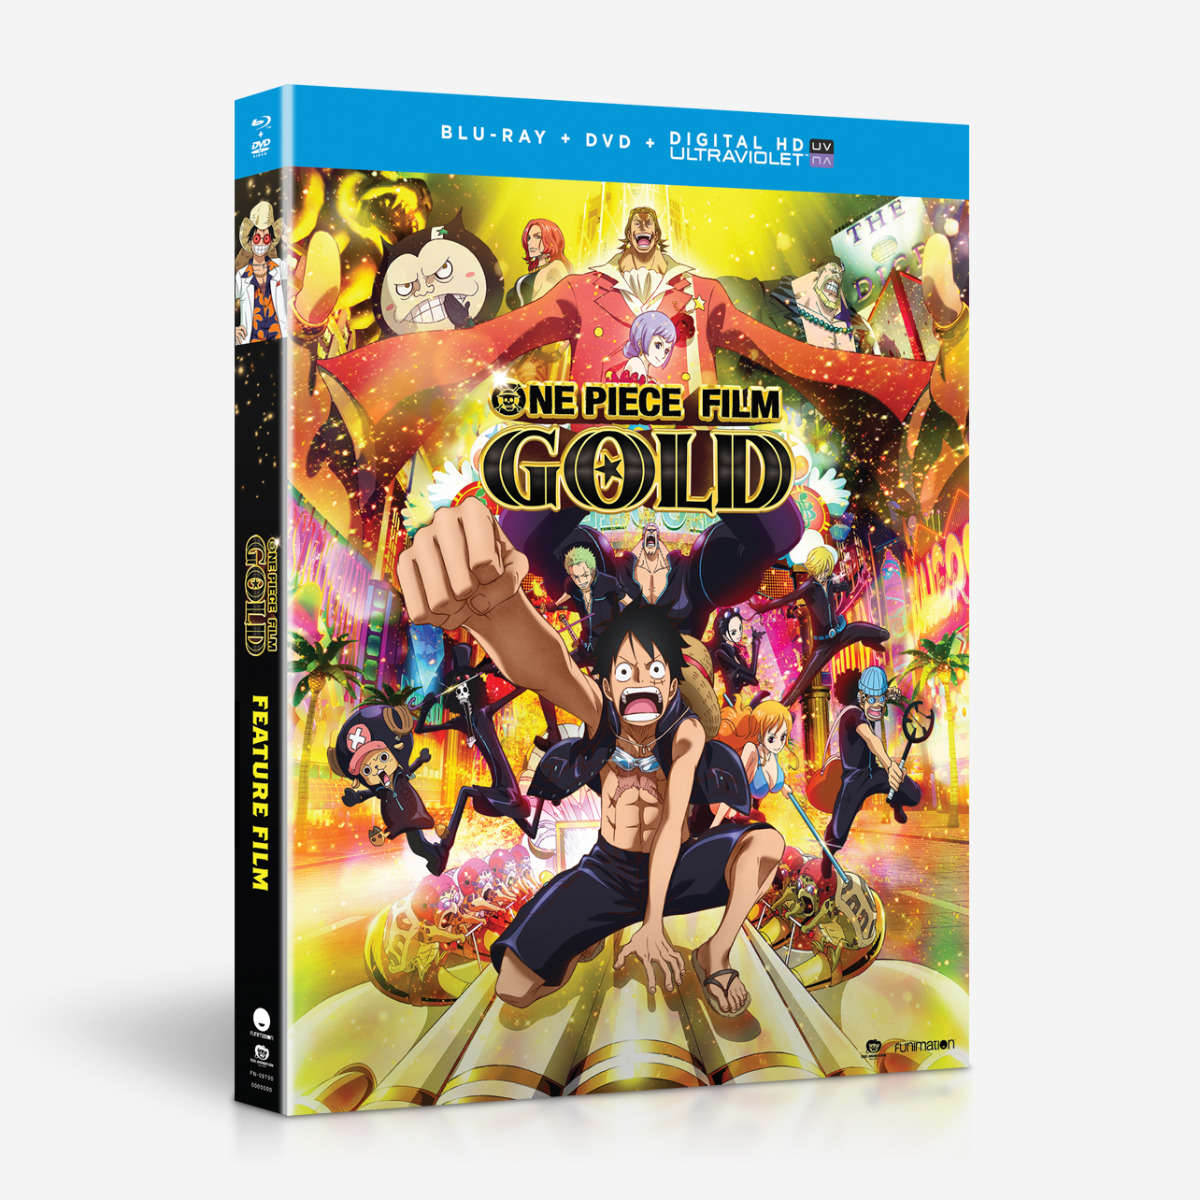 Film: Gold - Movie - BD/DVD Combo + UV home-video